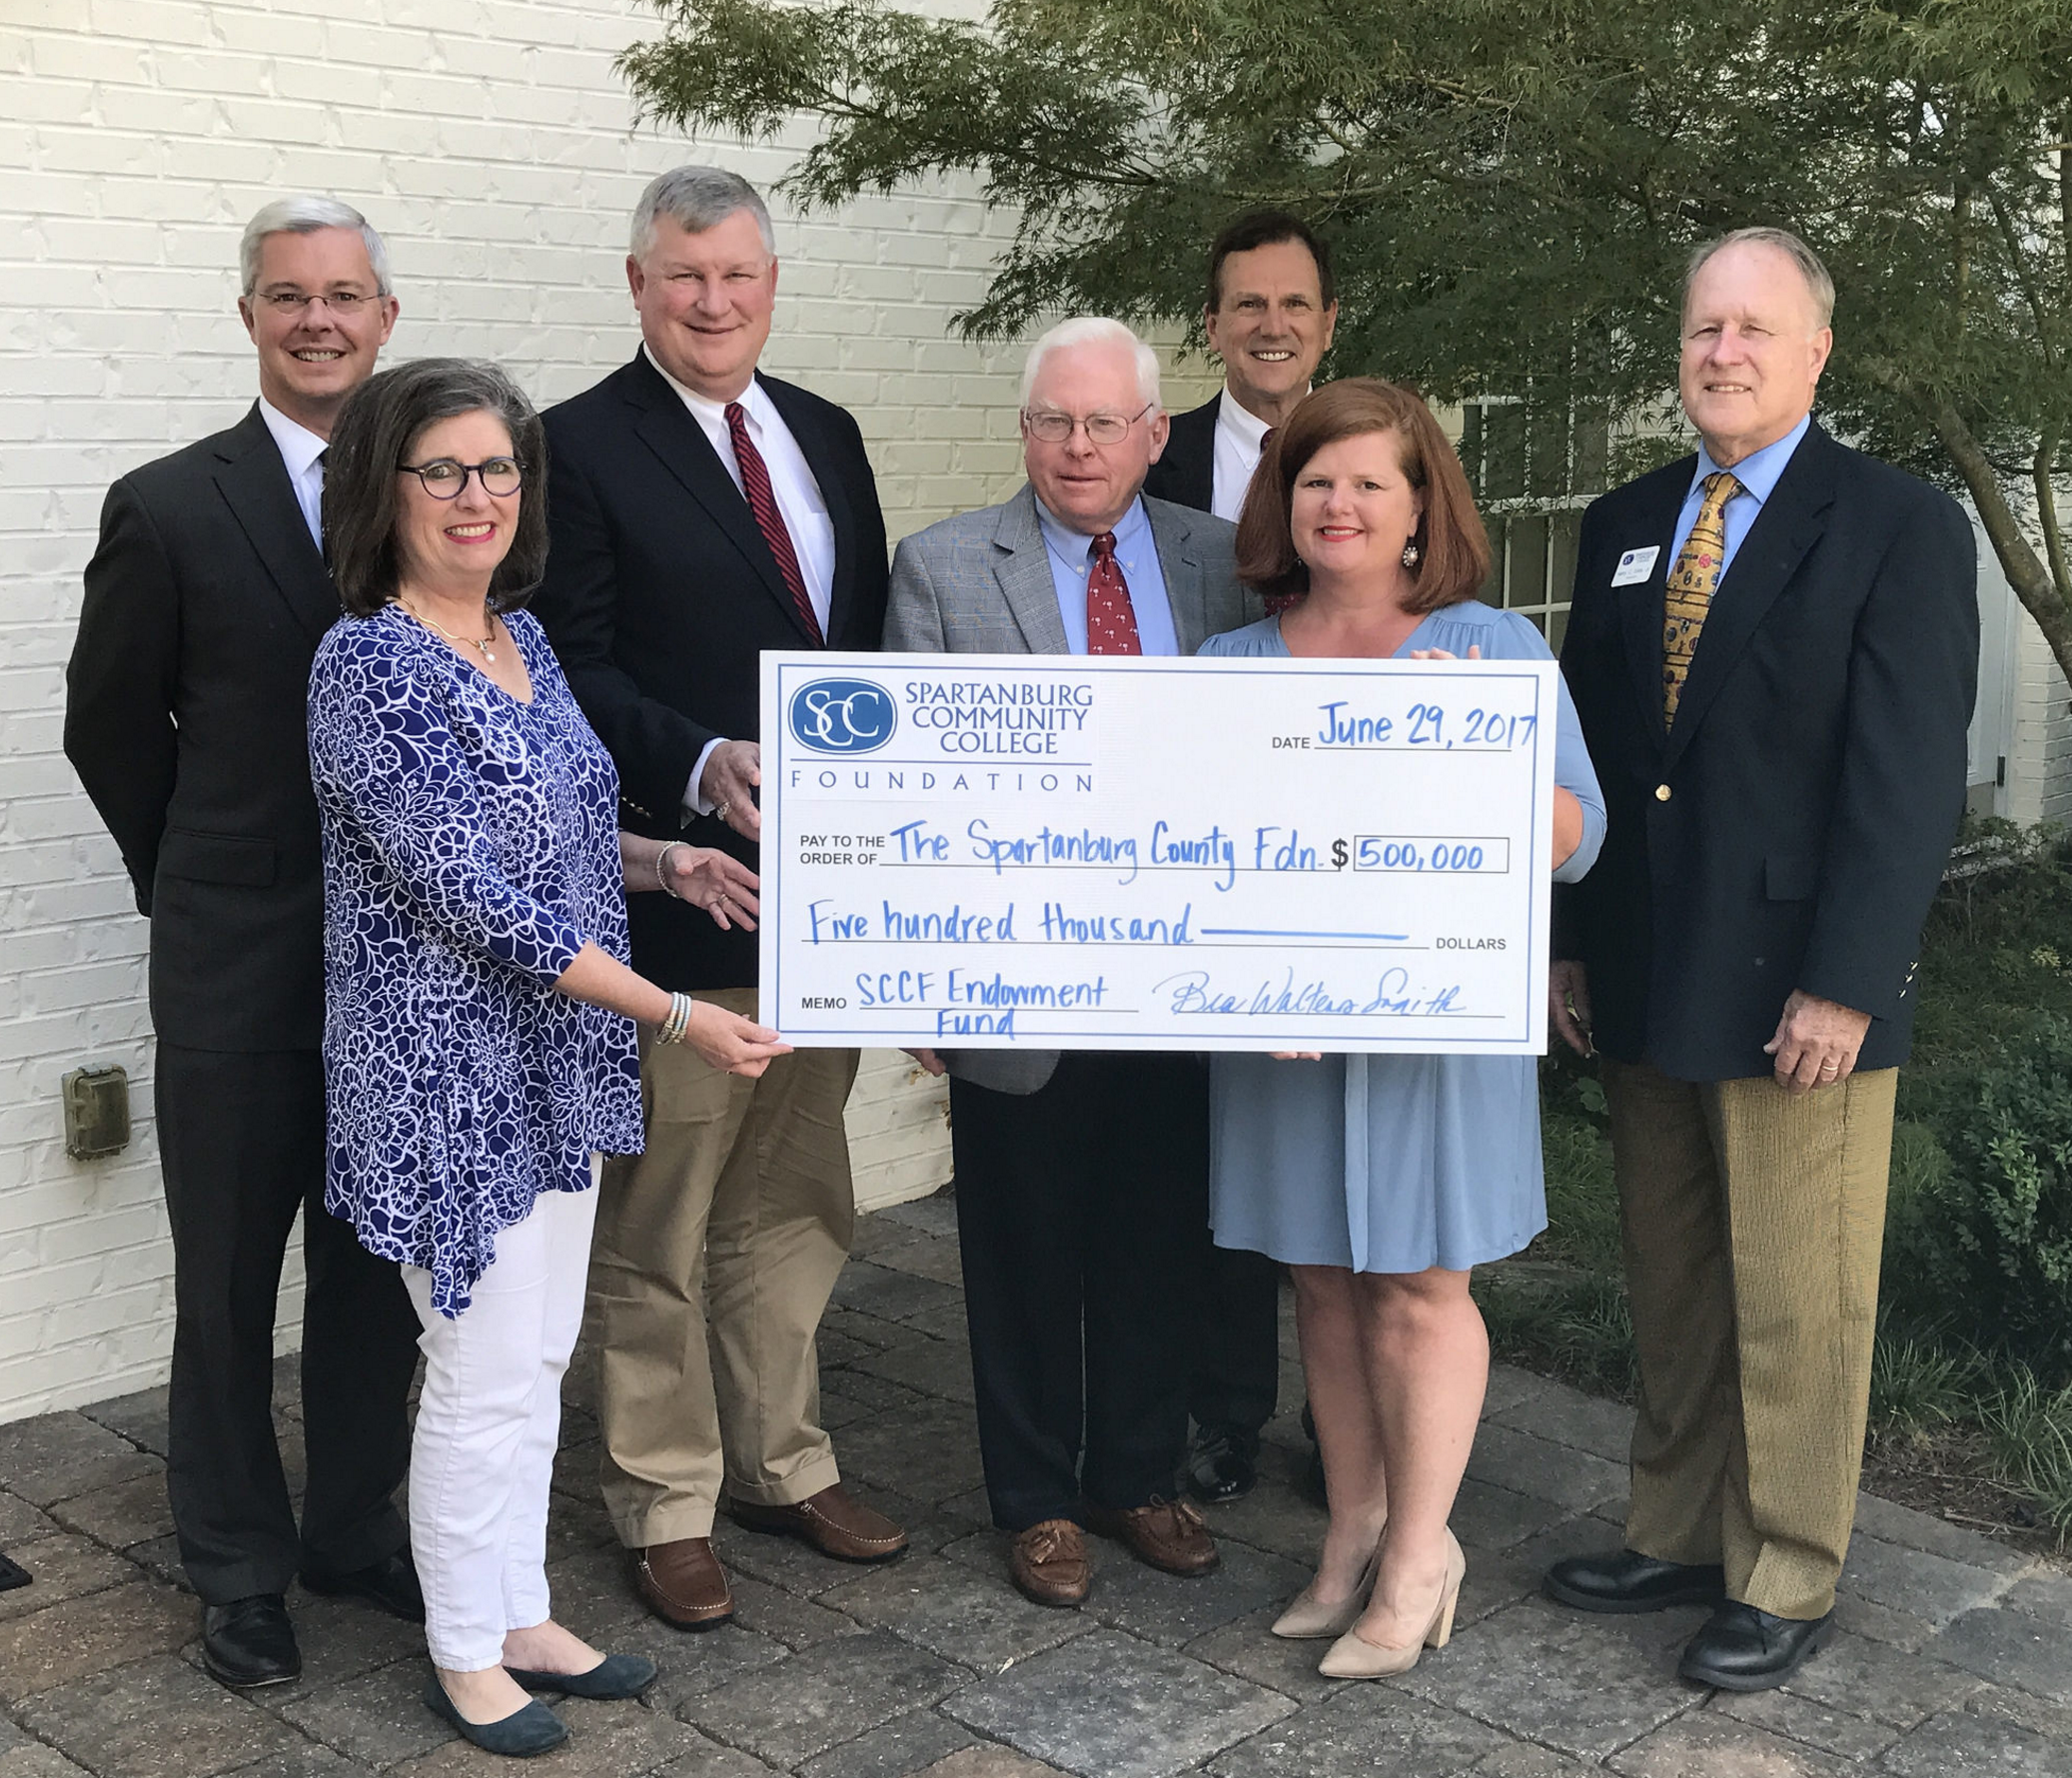 SCC Foundation and Spartanburg County Foundation